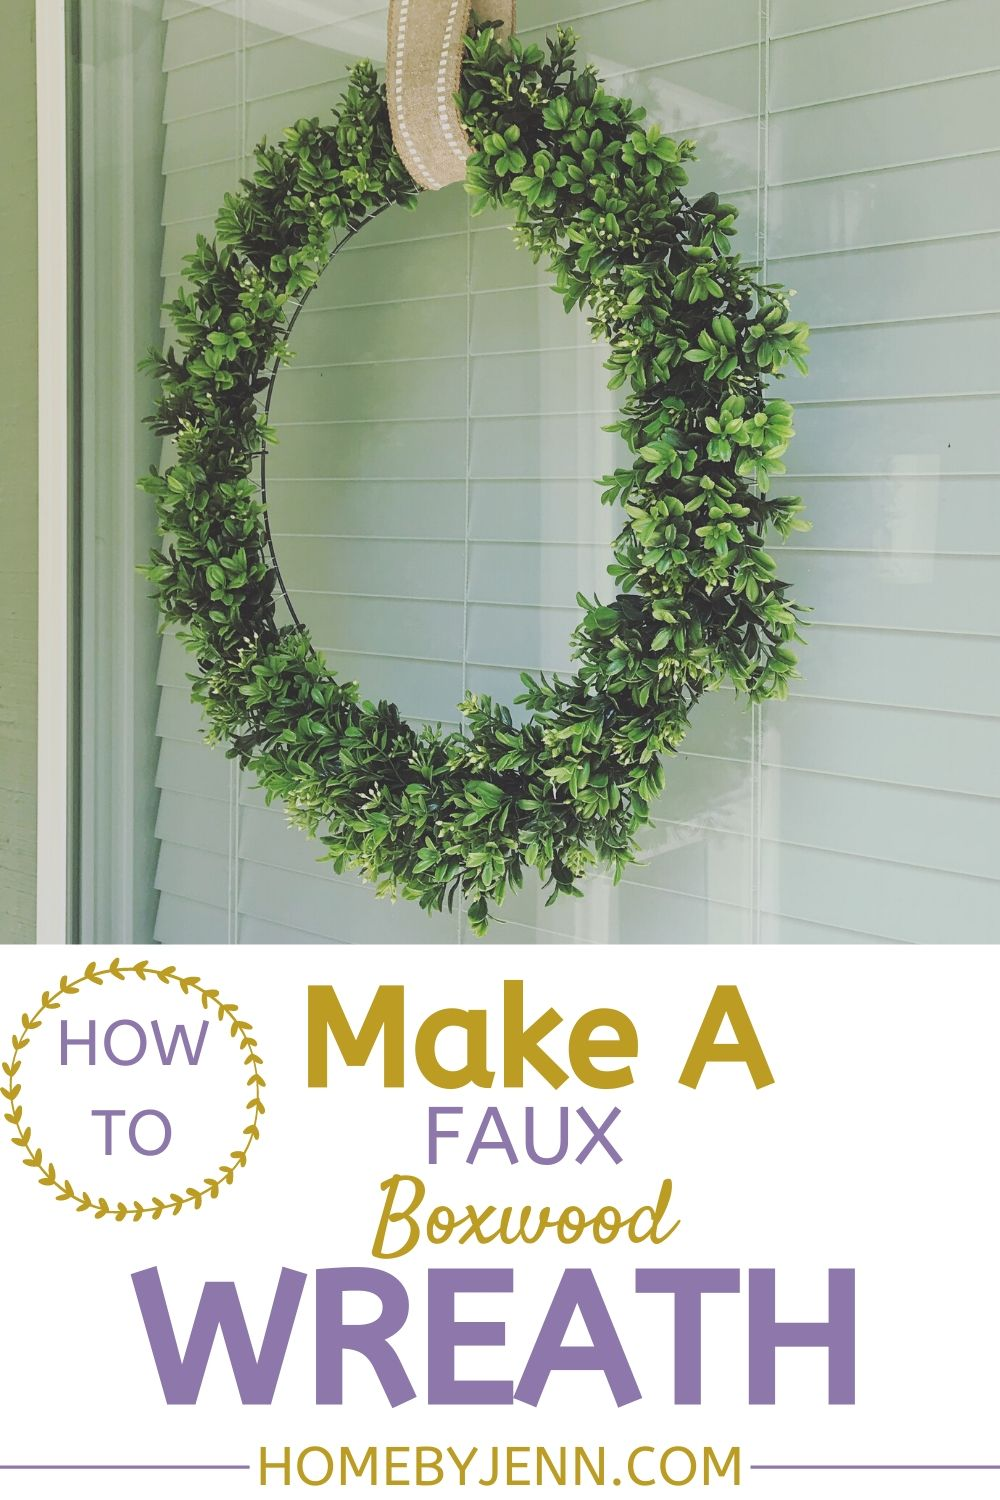 Make your own farmhouse boxwood wreath. Add some life to your front porch with this DIY boxwood wreath. #DIY #DIYproject #craft #homemadewreath #DIYwreath #boxwood #boxwoodwreath #wreath via @homebyjenn